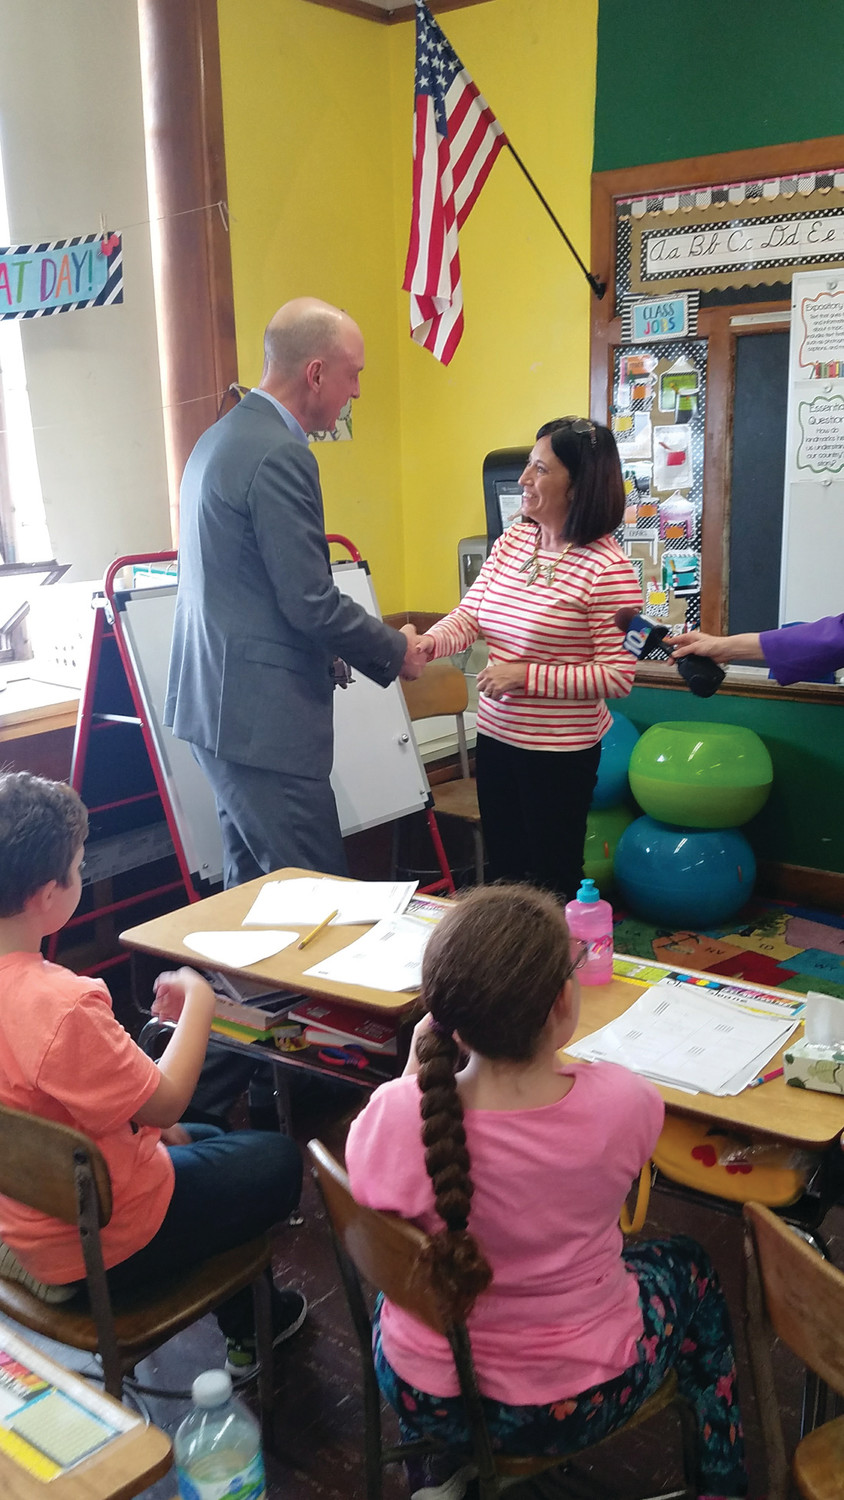 PROUD TO HAVE YOU ON OUR TEAM: Rhode Island Department of Education's Commissioner Ken Wagner congratulated Soccio on her accomplishments and thanked her for a job well done, presenting her with the official Golden Apple award.